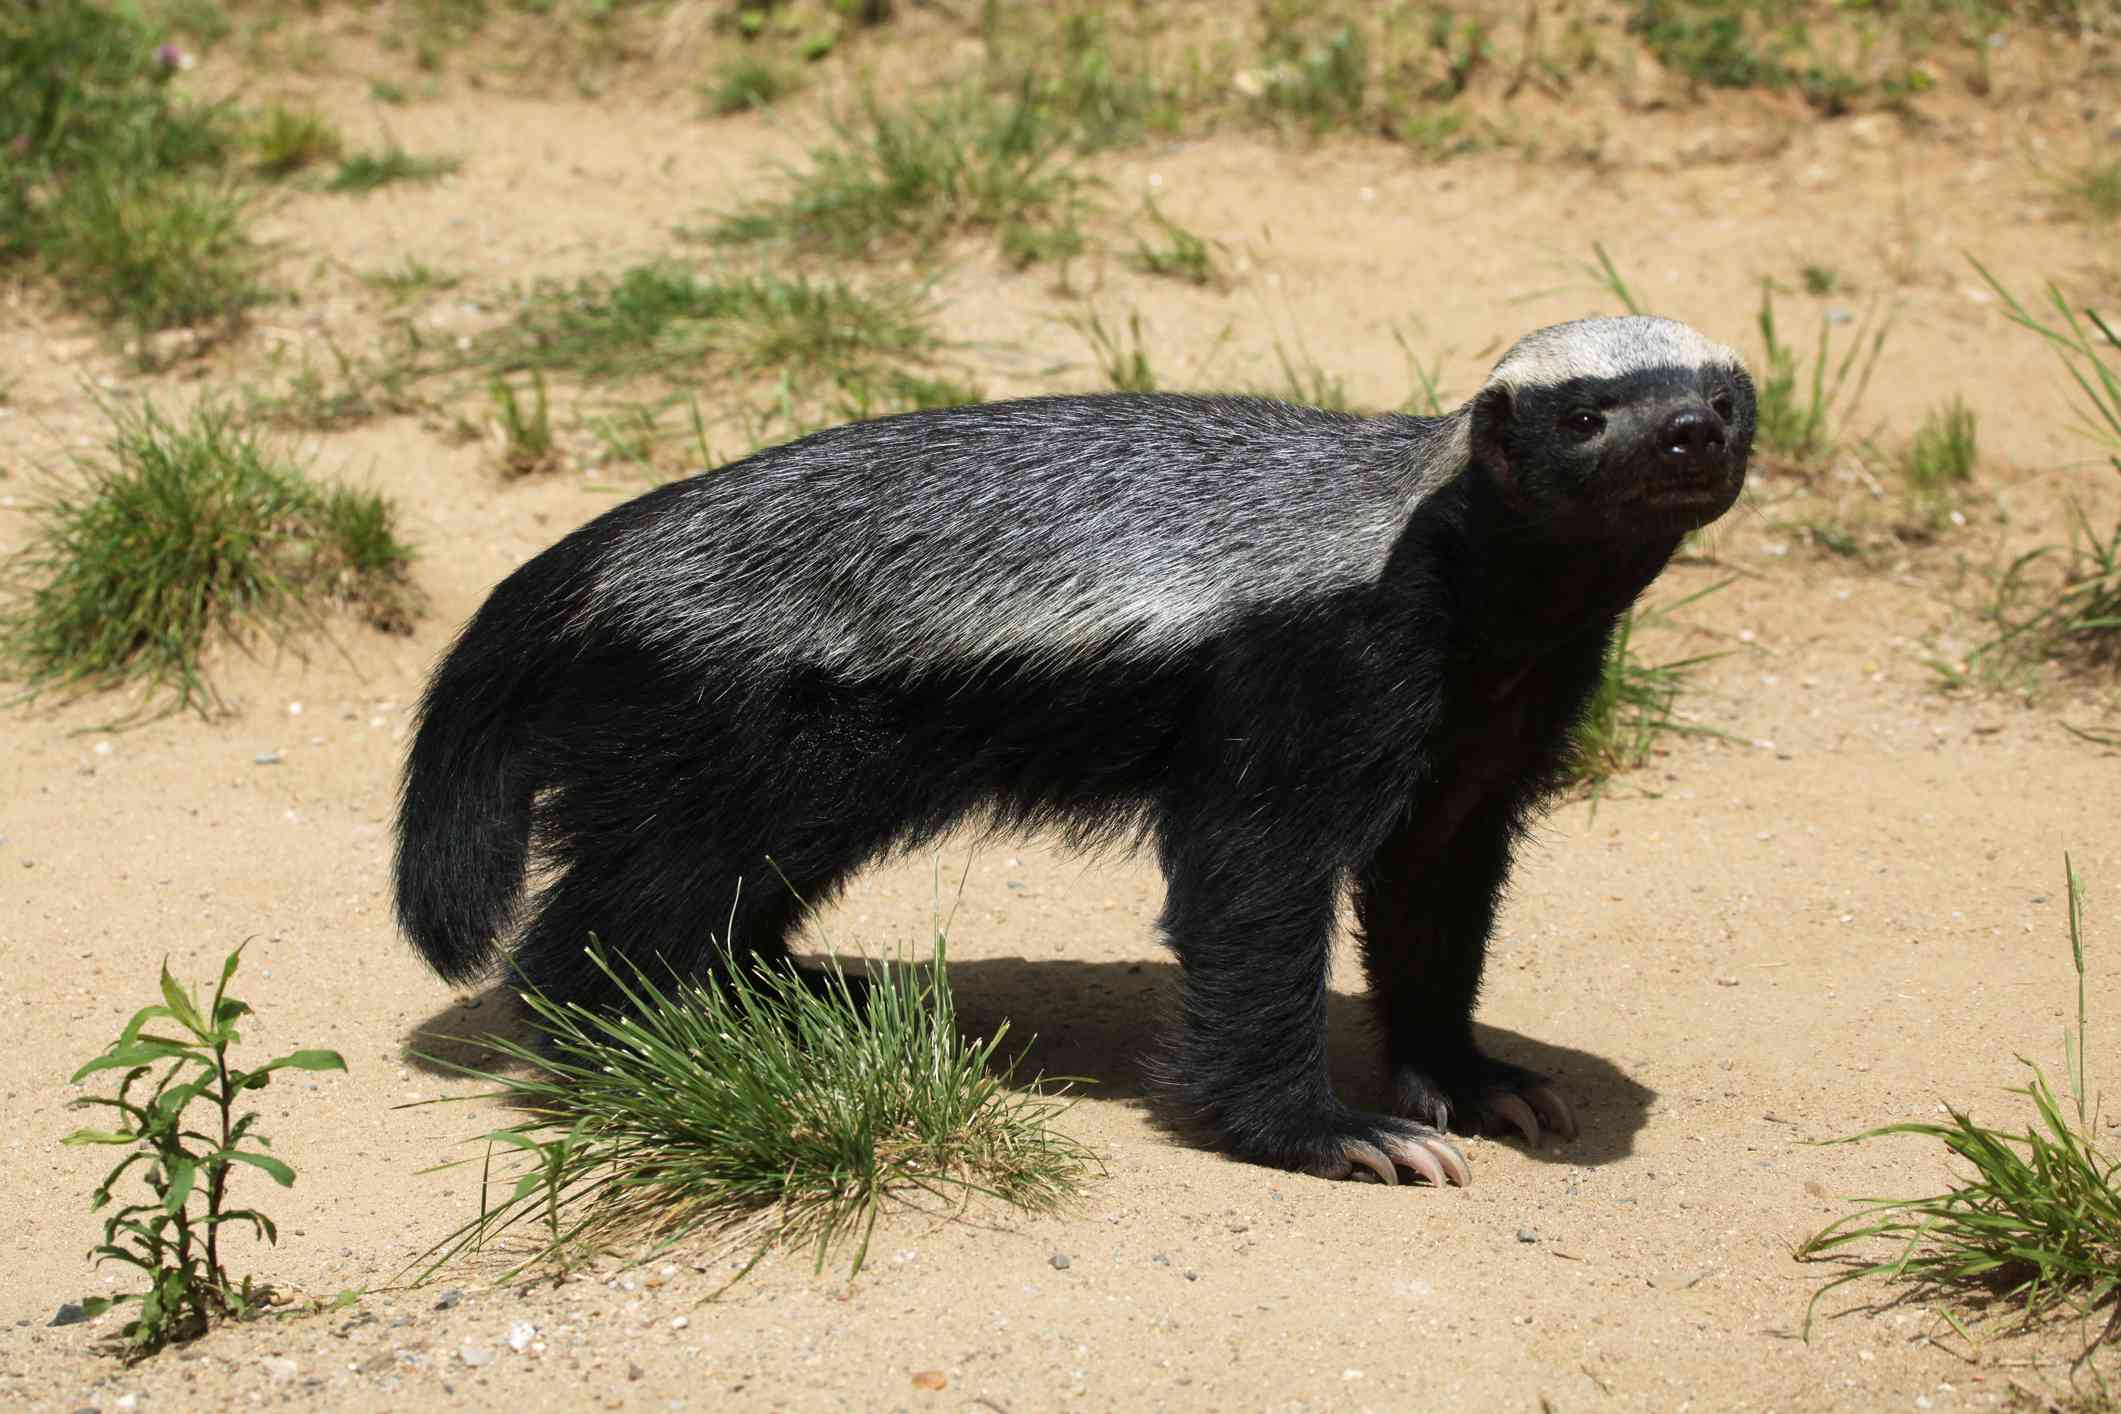 honey badger standing in a sandy habitat with small green plantws